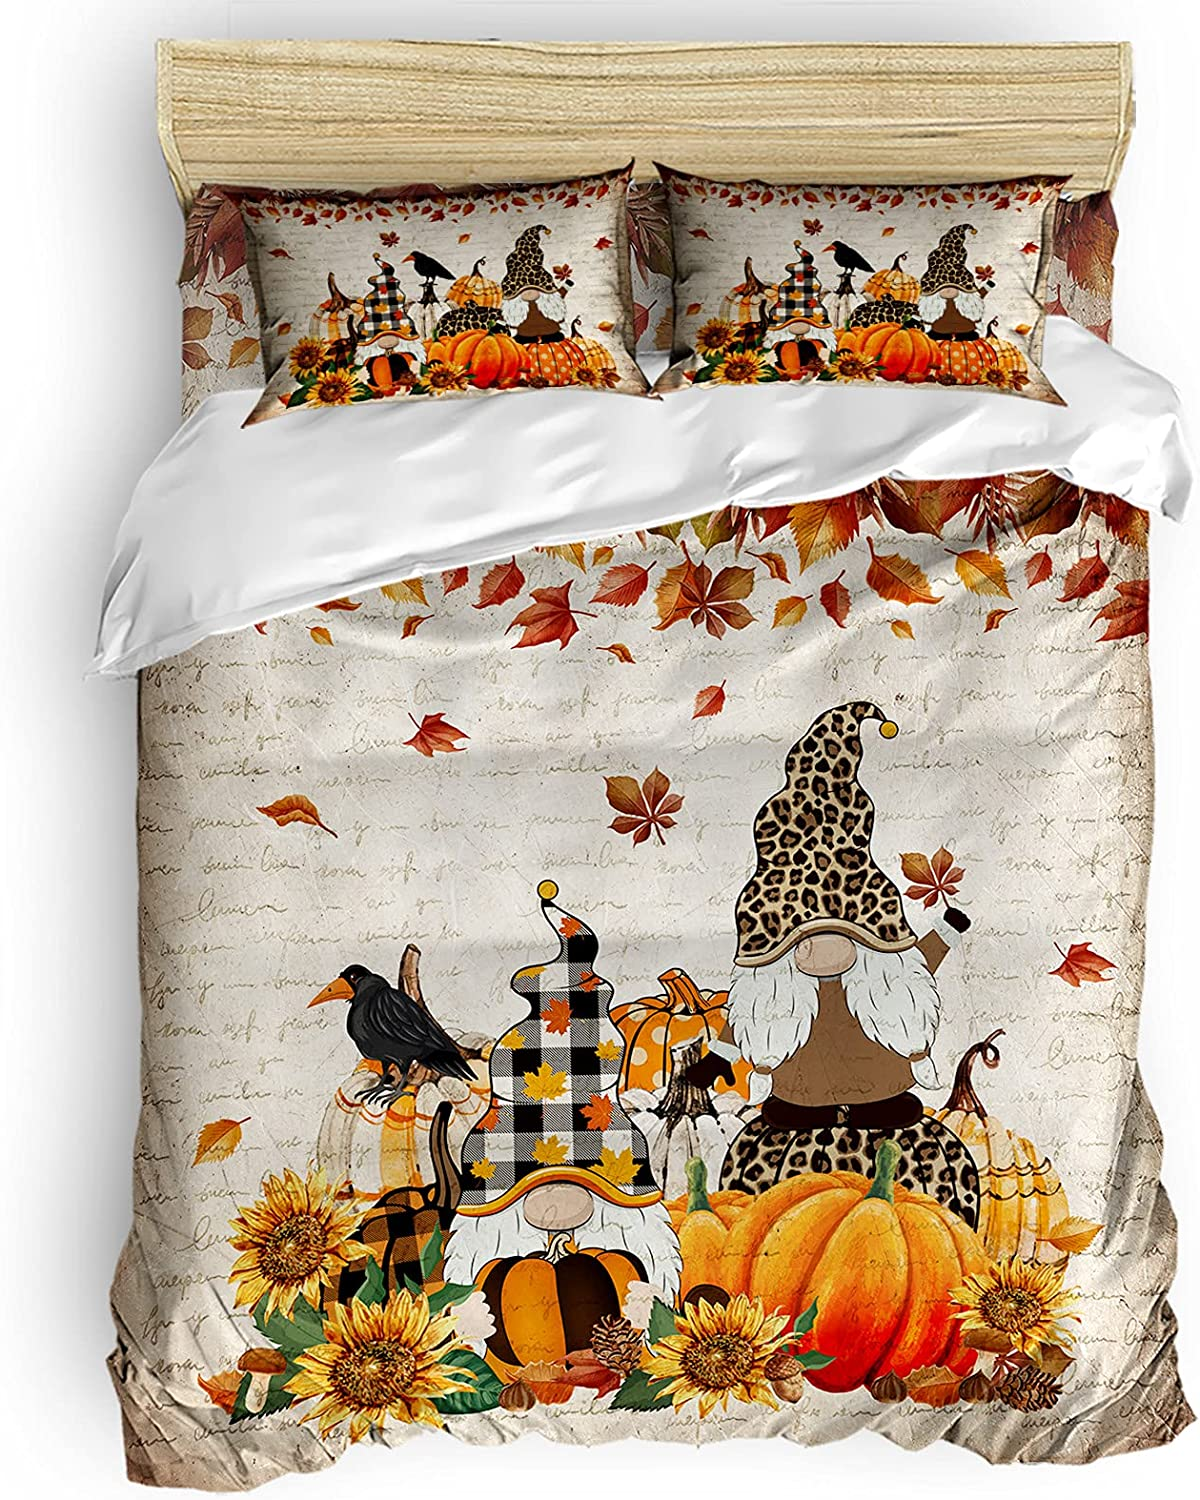 Popular Bedding Duvet It is very popular Covers Queen Size Soft Washed Microfiber Comforter